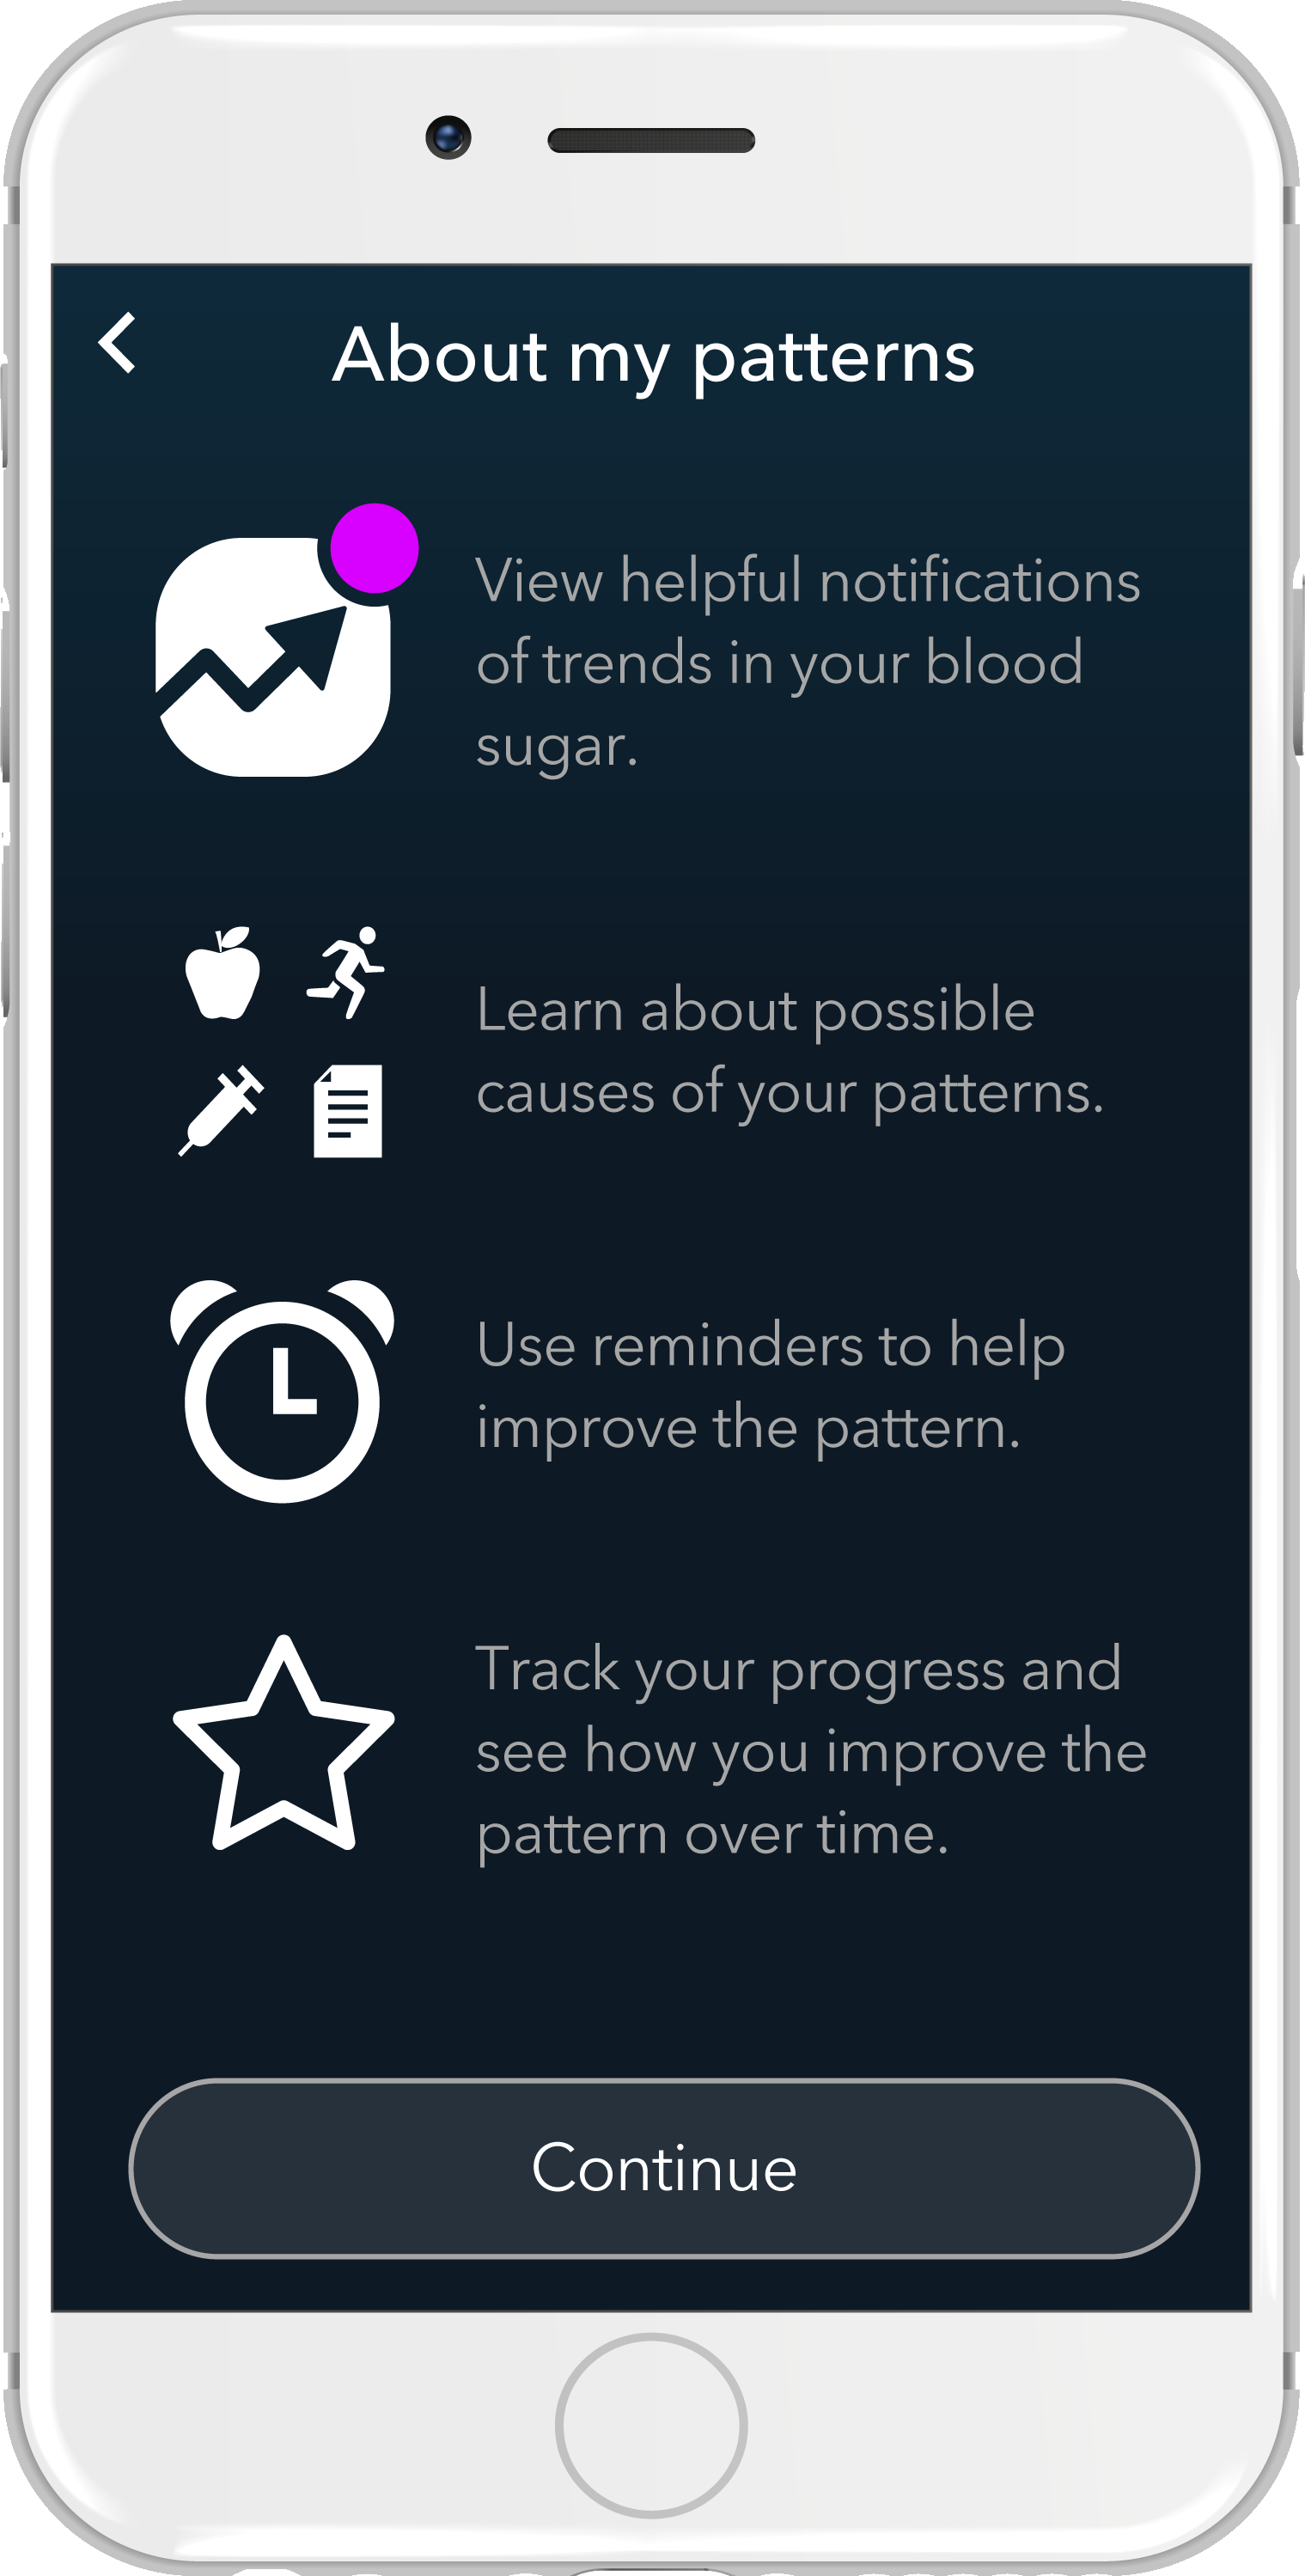 The app provides options for personalized testing